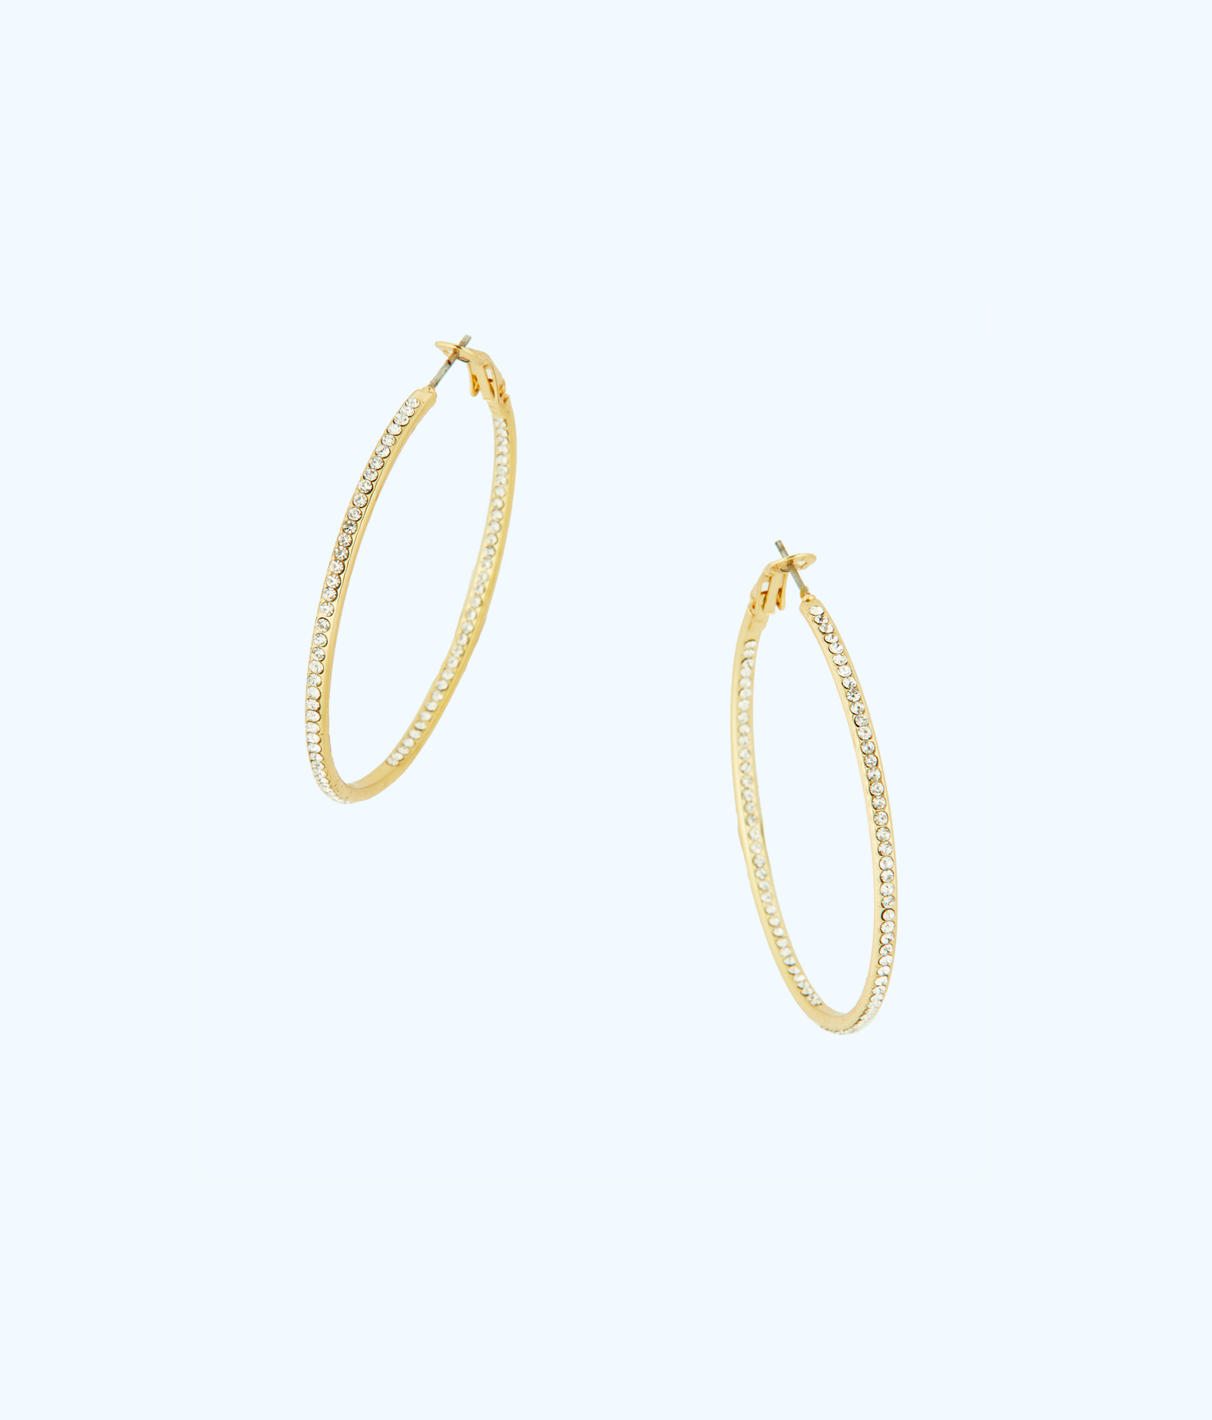 Lilly Pulitzer Lilly Pulitzer Stardust Hoop Earrings